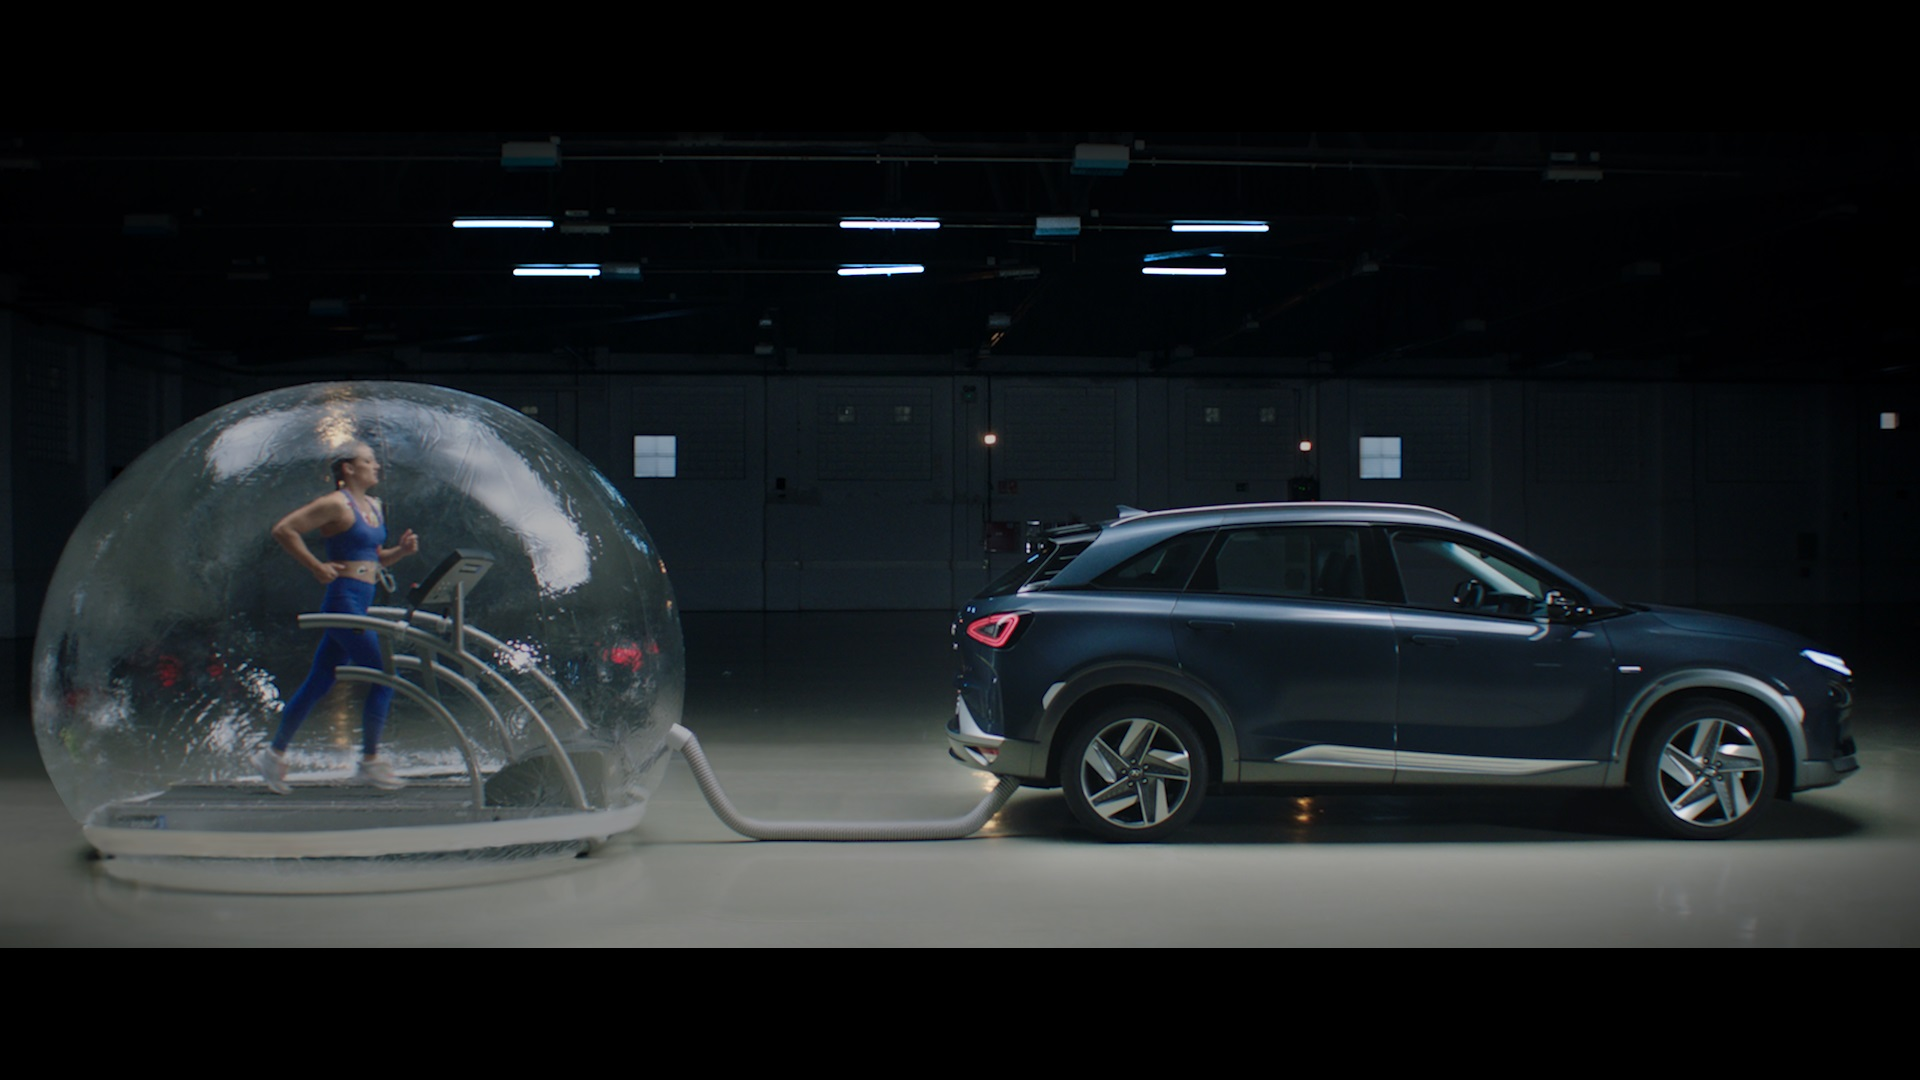 Hyundai Spain new campaign showcases the technology of the NEXO